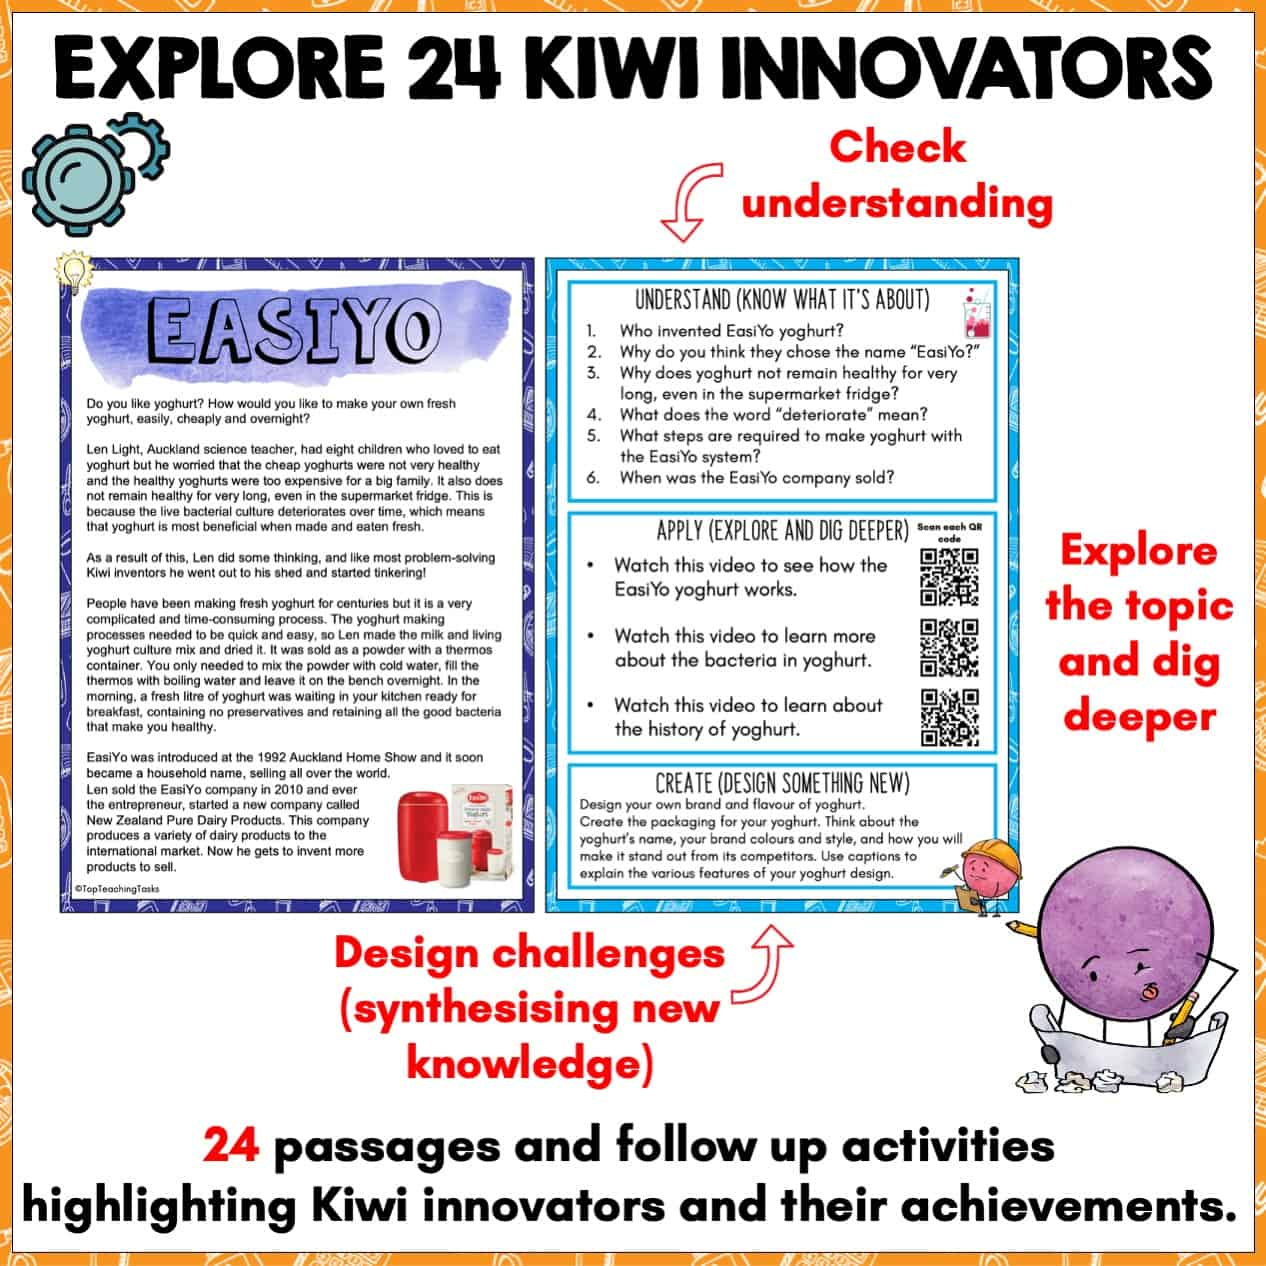 Kiwi Innovators Unit. Kiwi Innovators Unit. Explore some of the fascinating Kiwi innovators and inventions that have been created in New Zealand's history. In this Kiwi Innovators unit, students will learn about 24 New Zealand Inventors and their creative ideas, apply this knowledge by exploring digital links, and put their own design skills to the test with creative challenges.